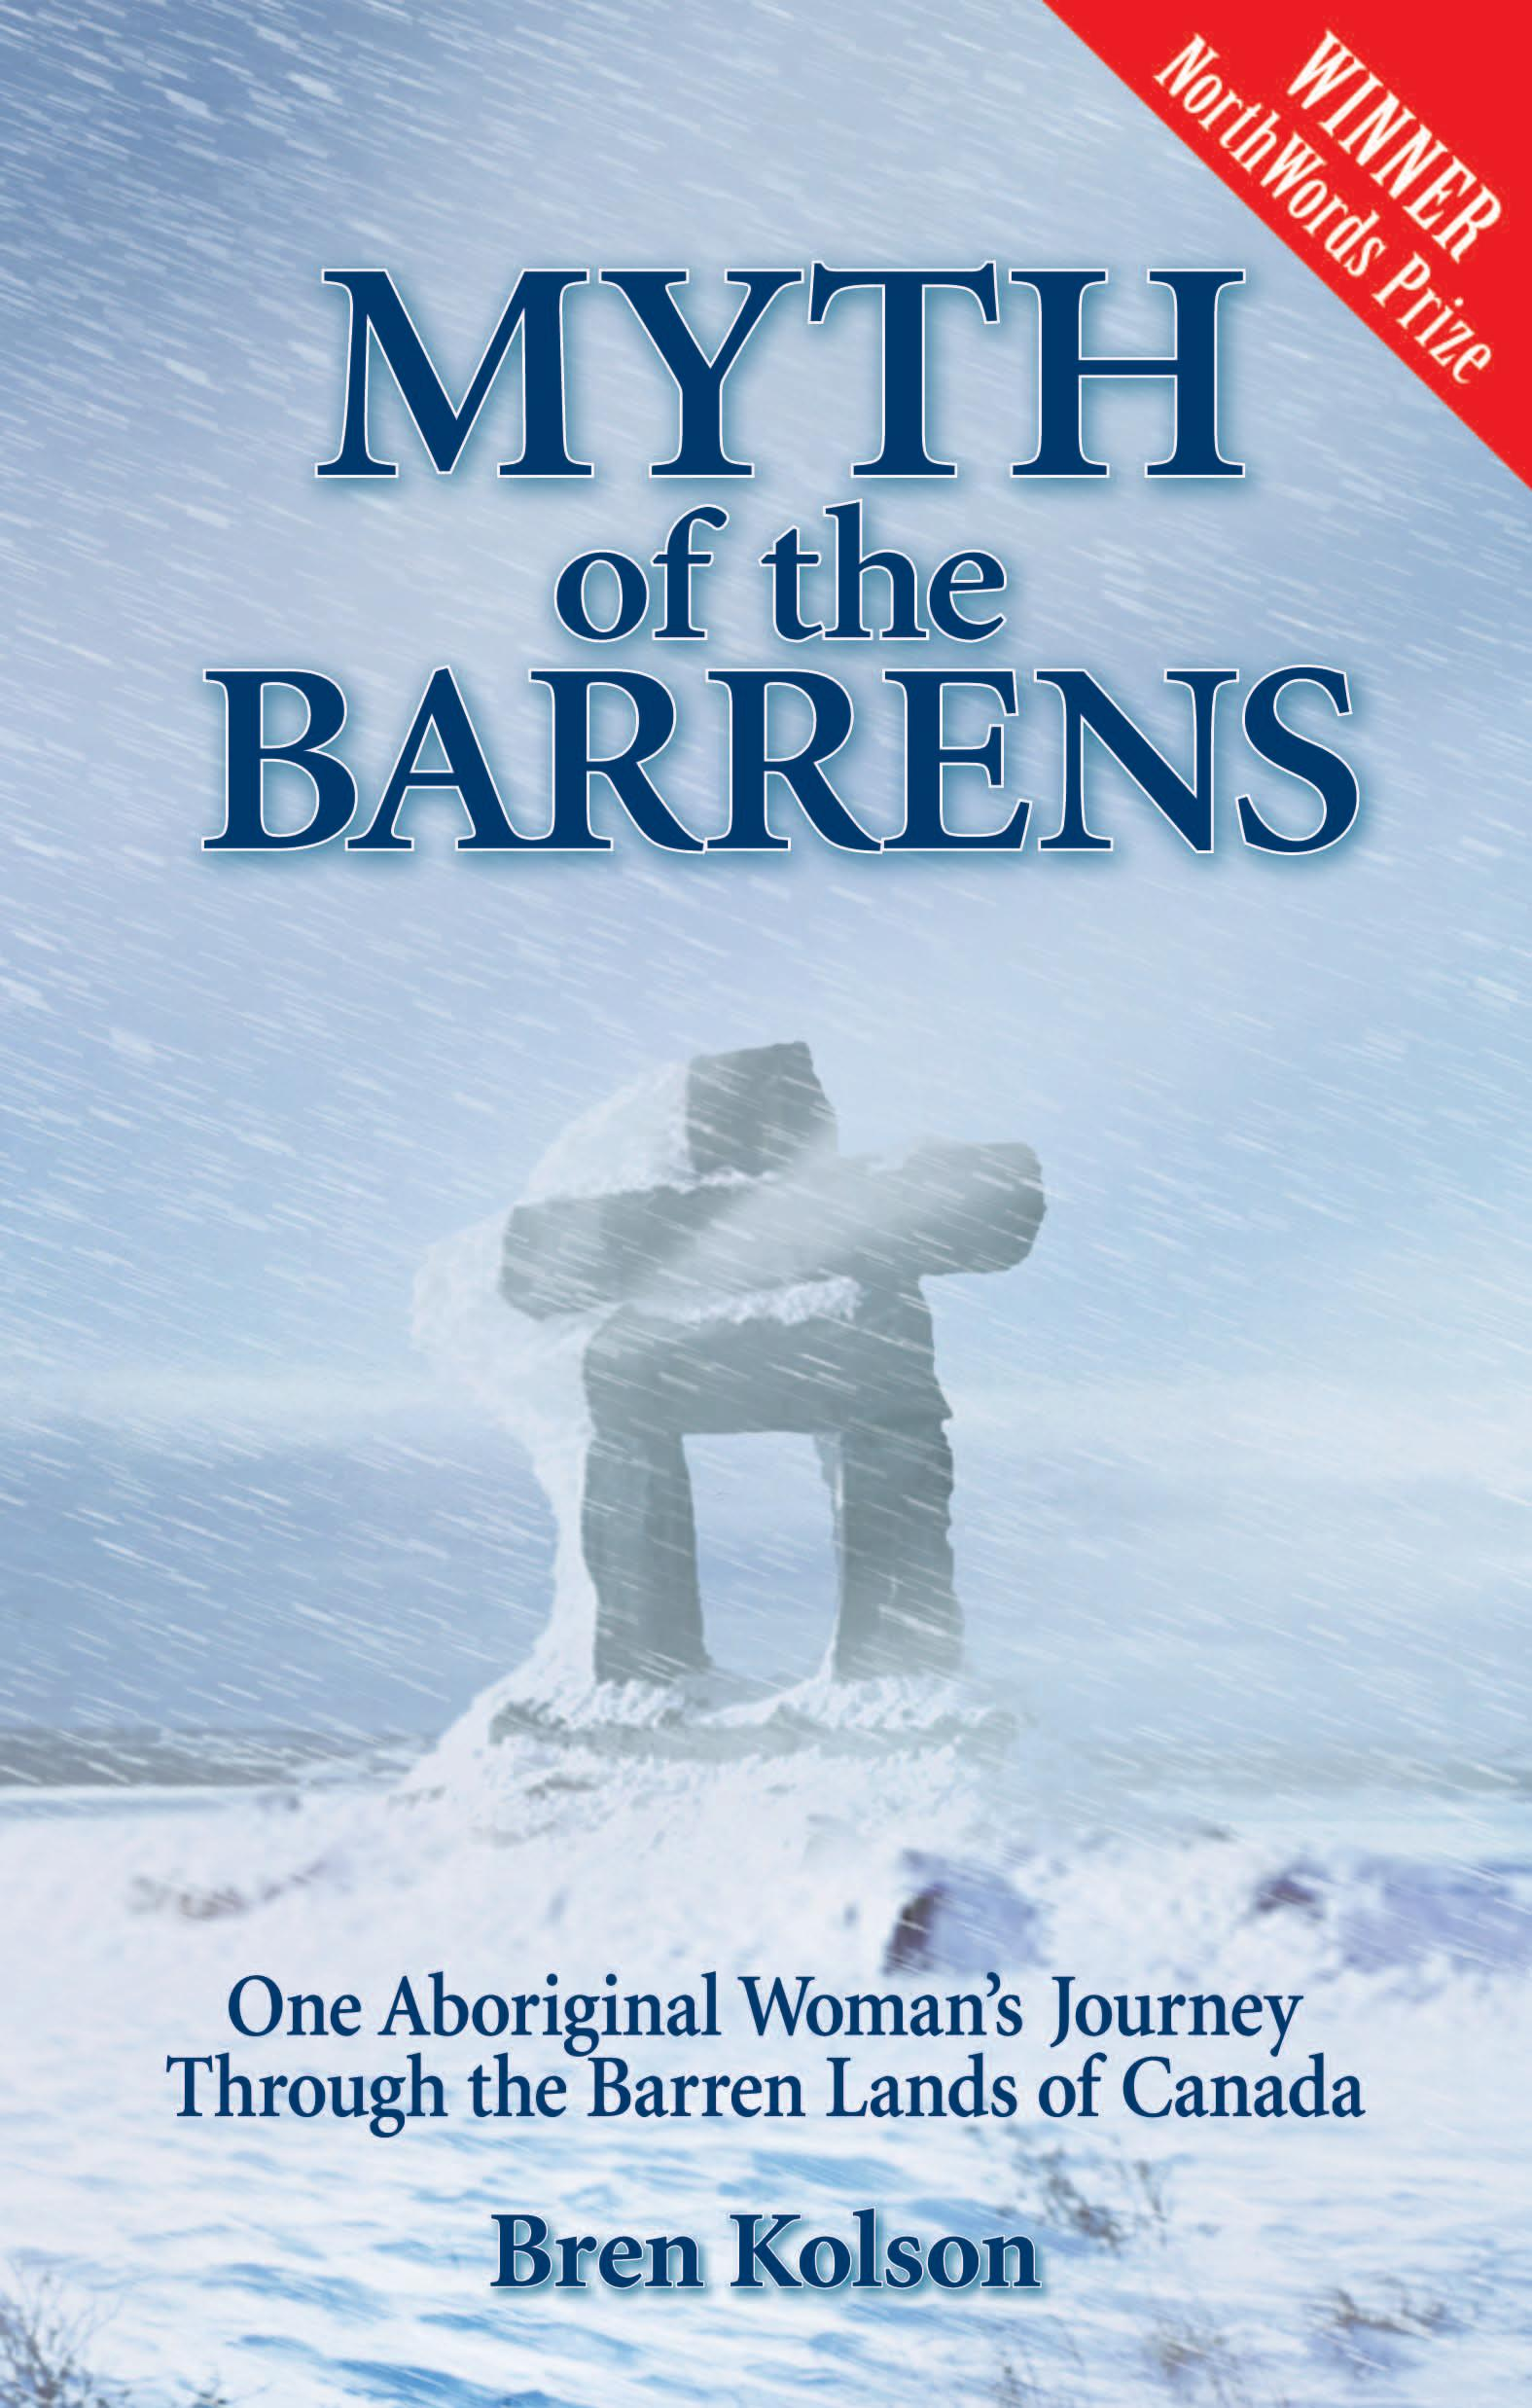 Myth of the Barrens